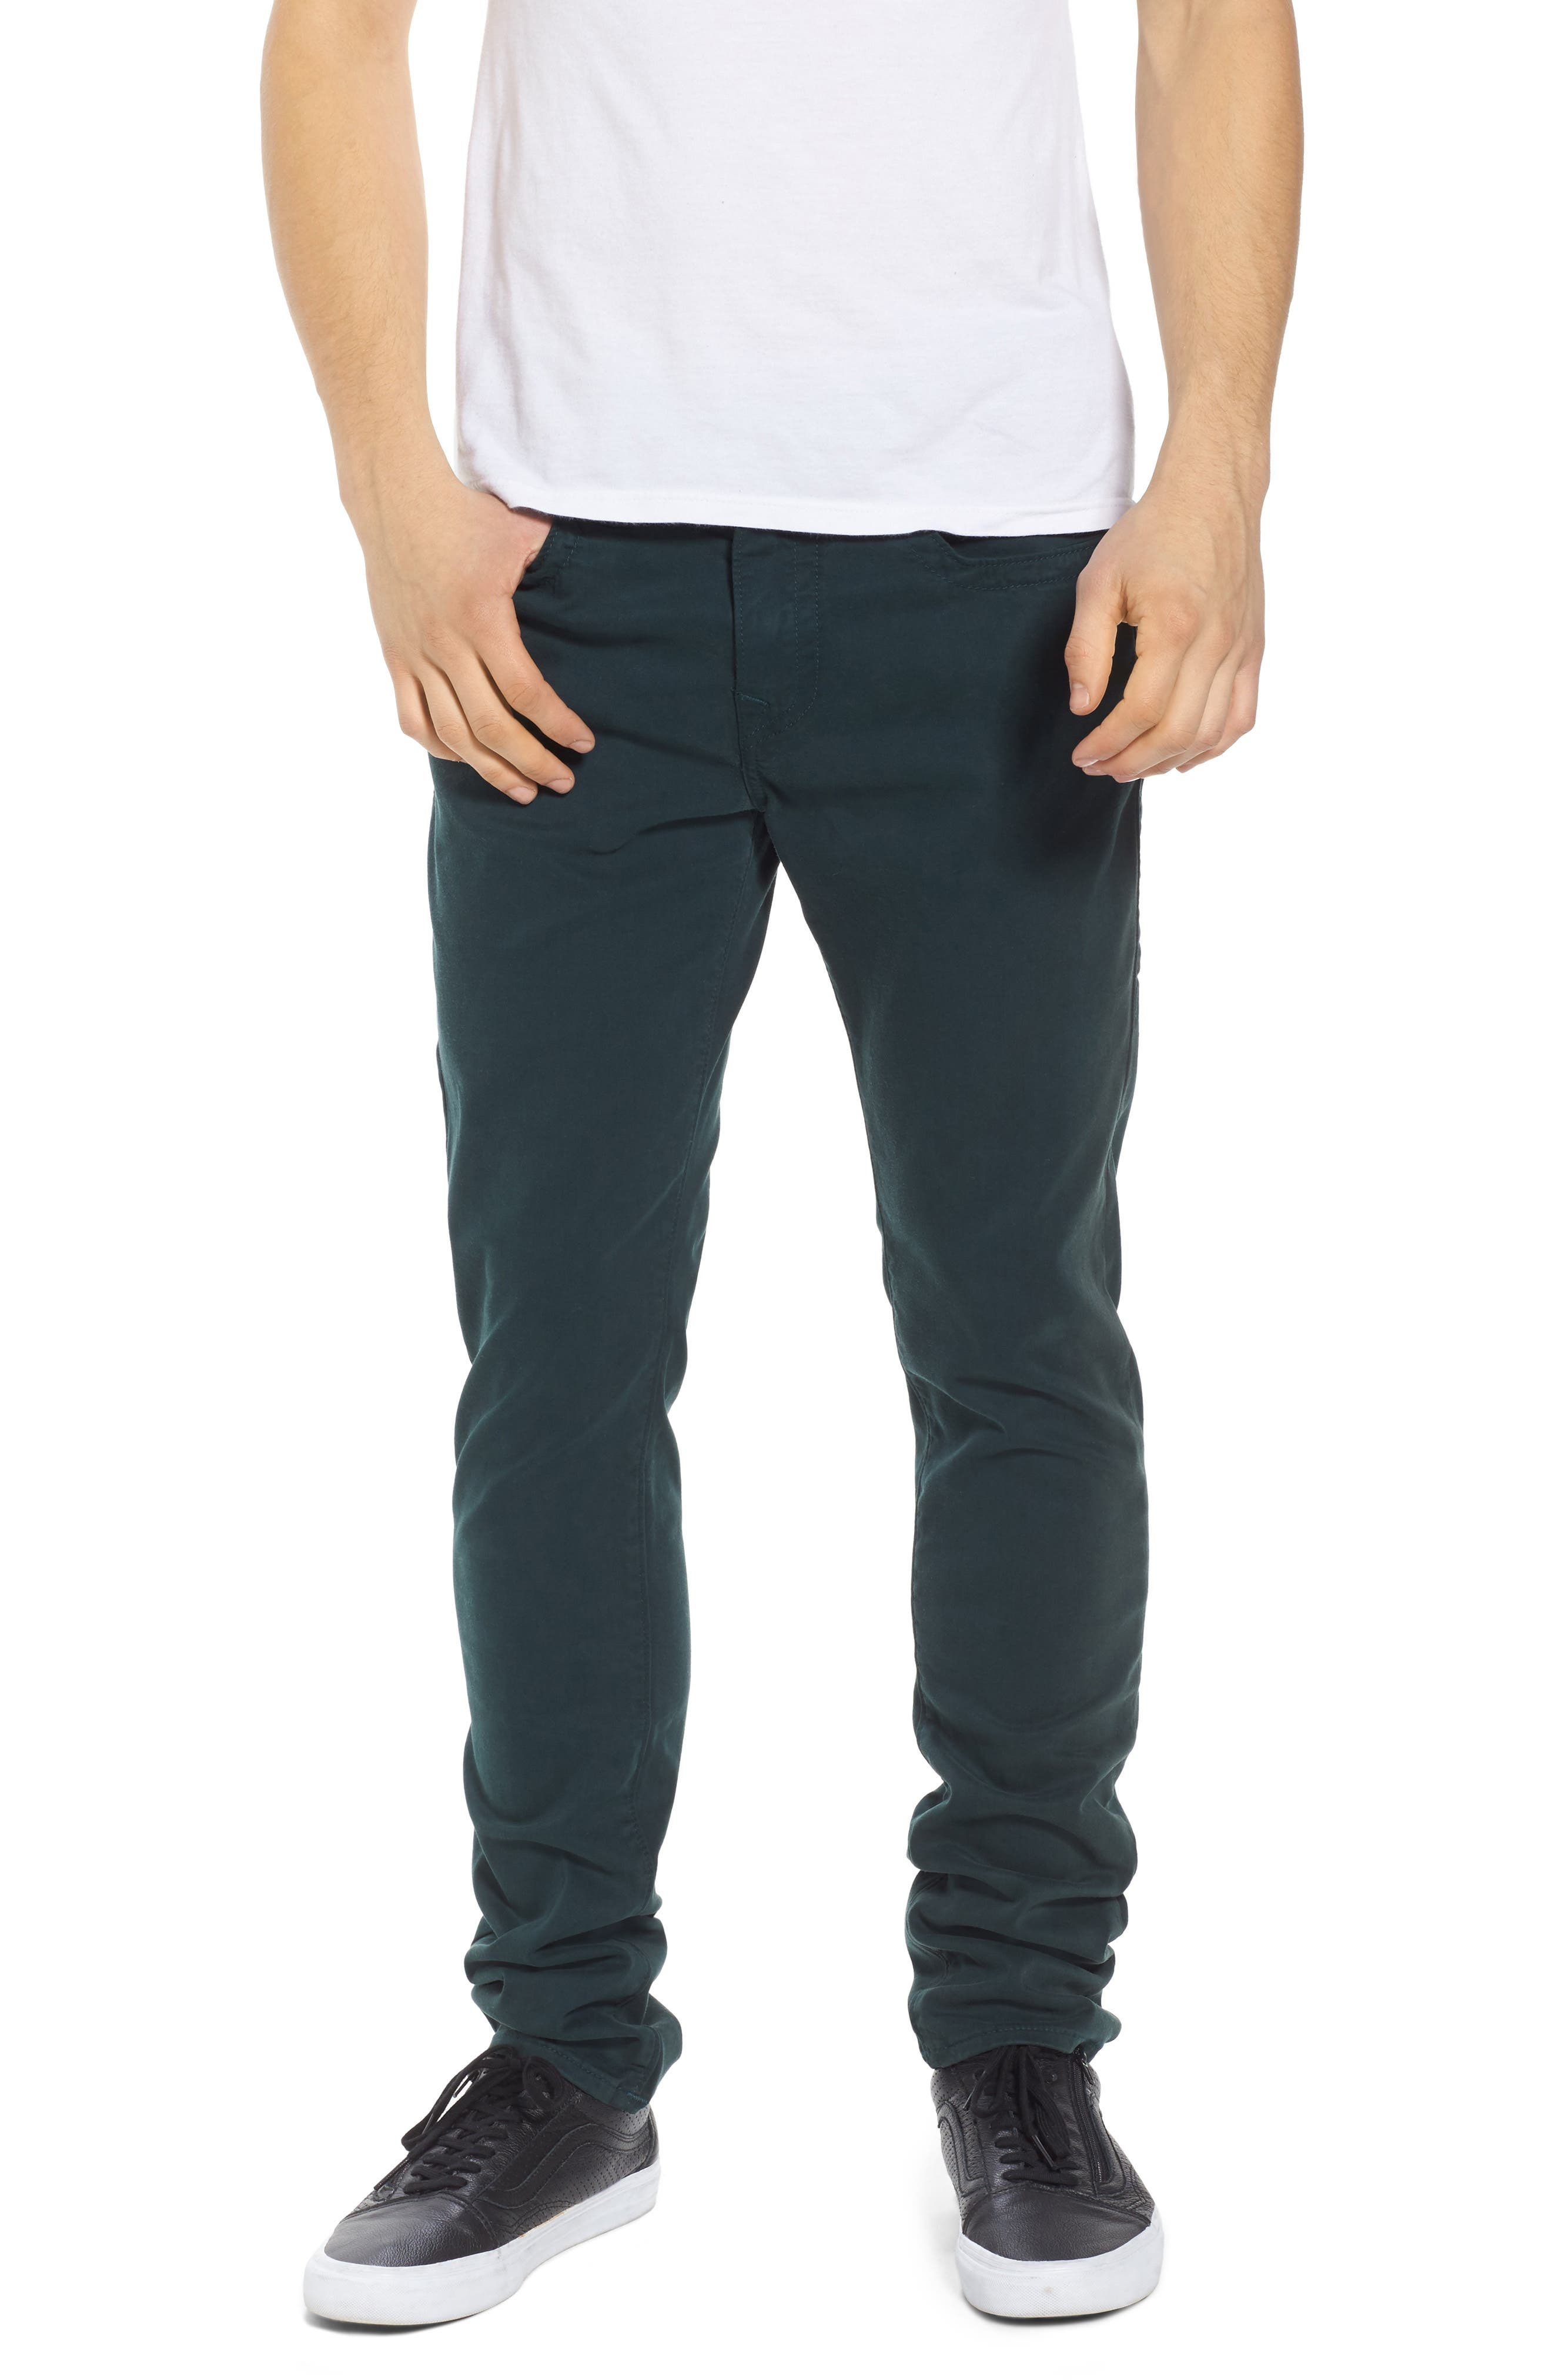 Rocco Skinny Fit Jeans,                         Main,                         color, Hunter Green